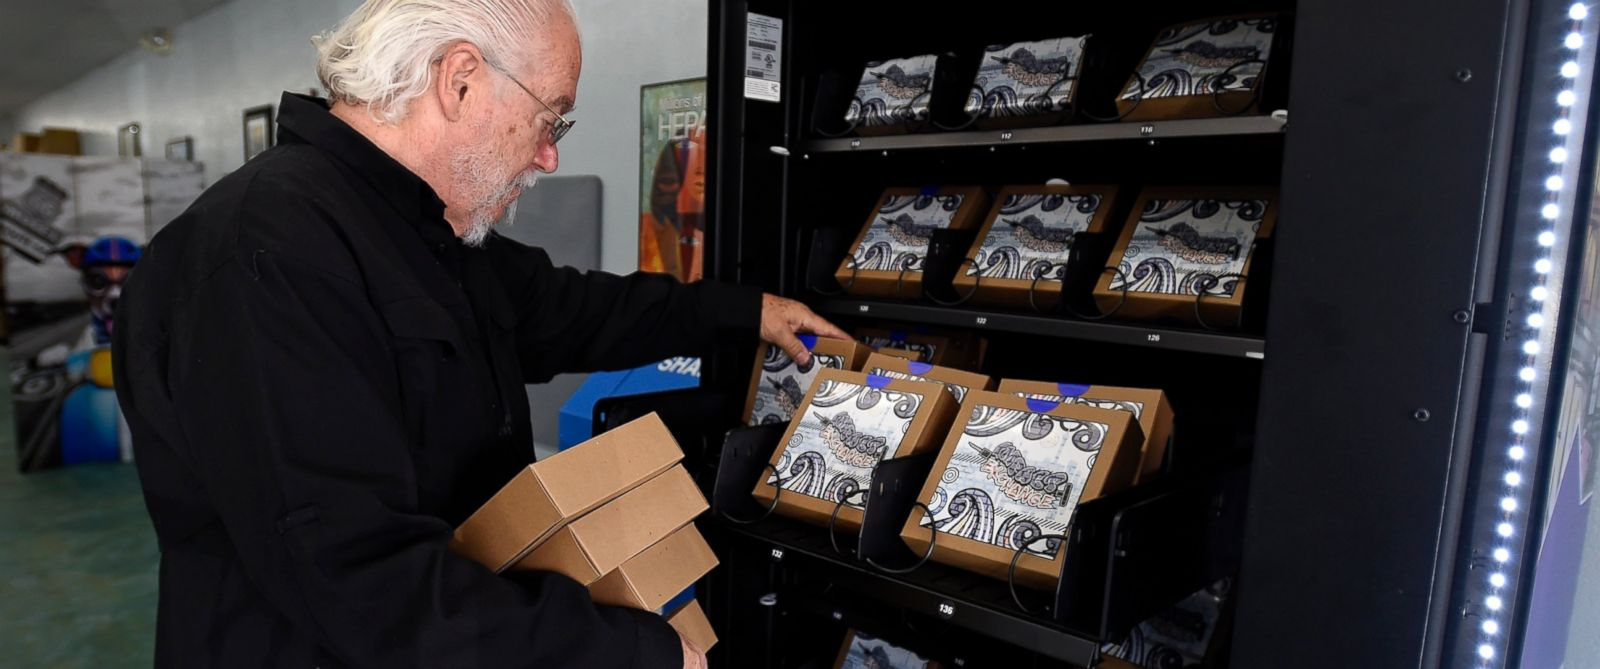 PHOTO: Program director Rick Reich loads needle replacement kits that are now available from a vending machine. The vending machine is a first-in-the-nation experiment to automate the dispensing of clean needles for intravenous drug users.